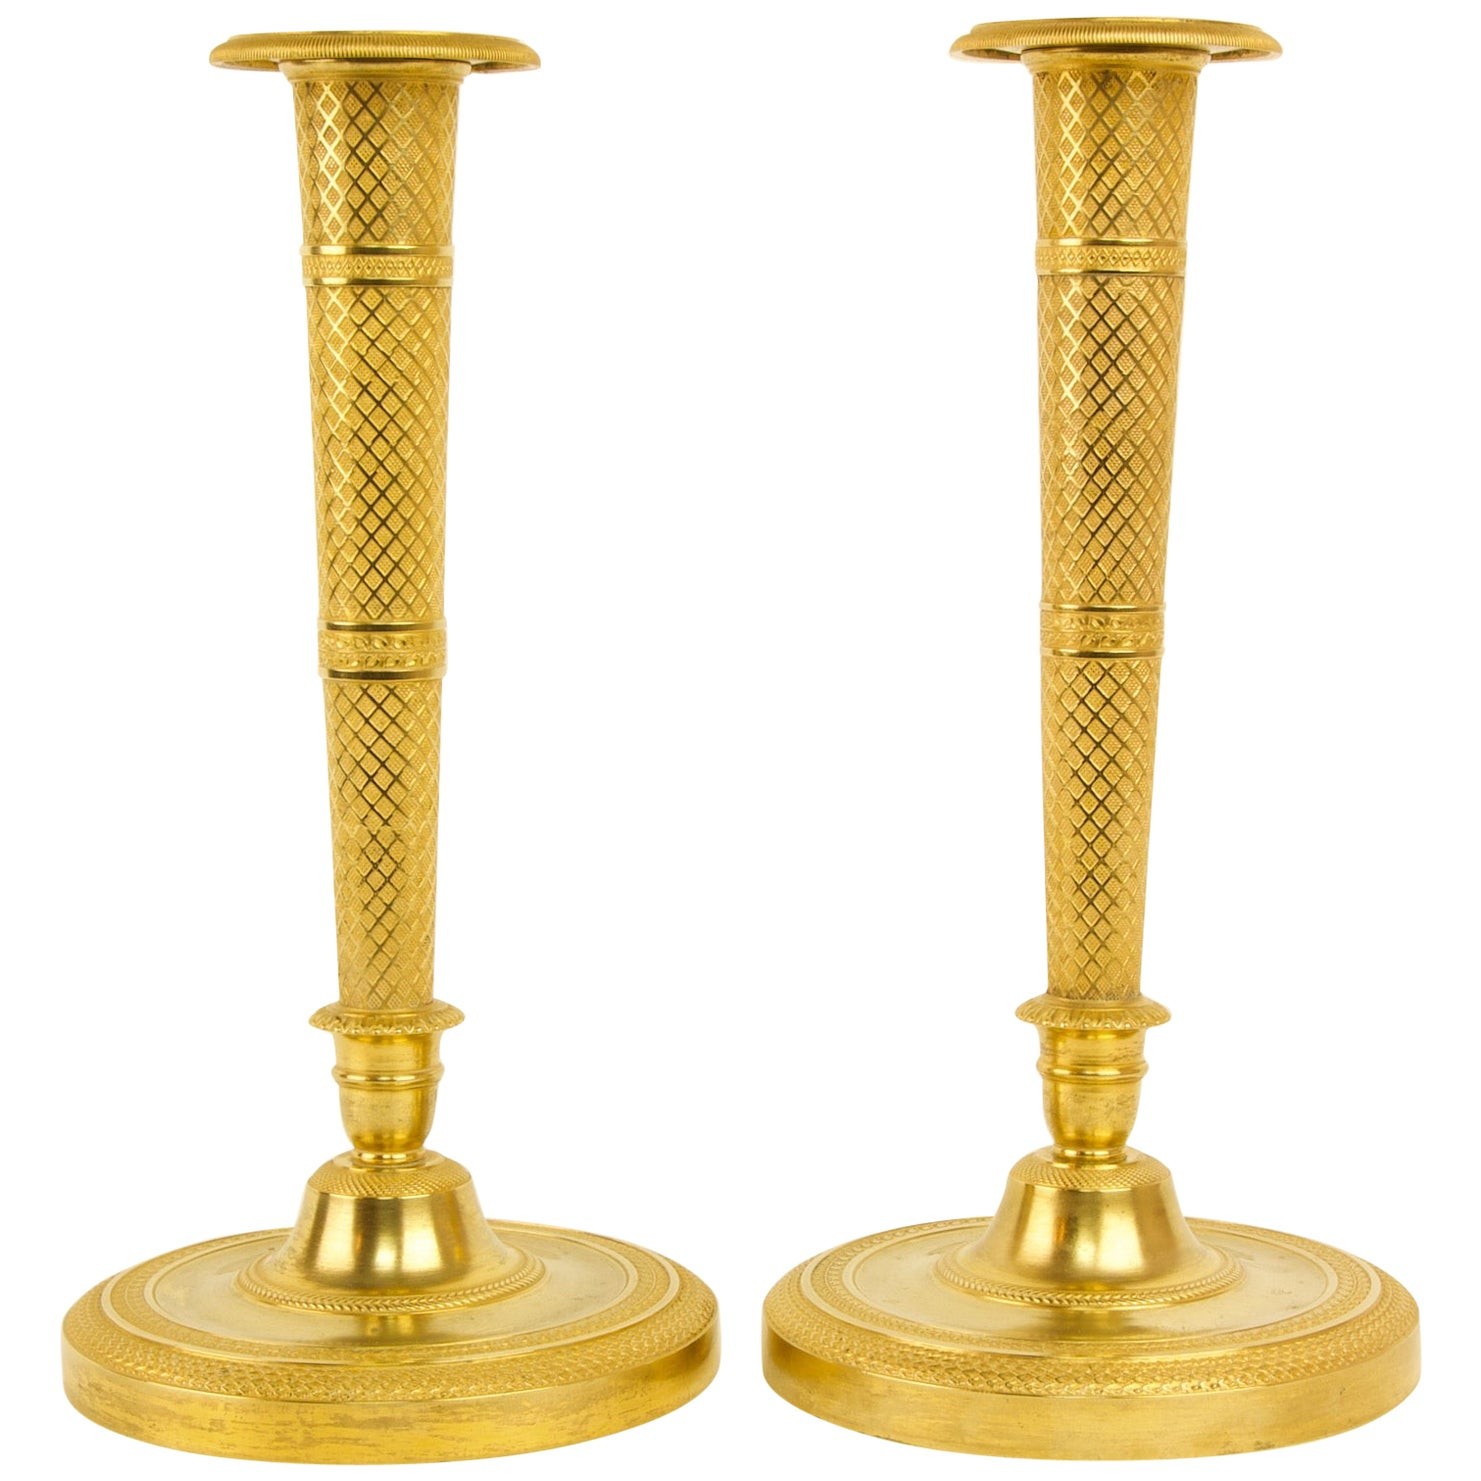 Pair of Early 19th Century French Empire Gilt Bronze Candlesticks after C. Galle